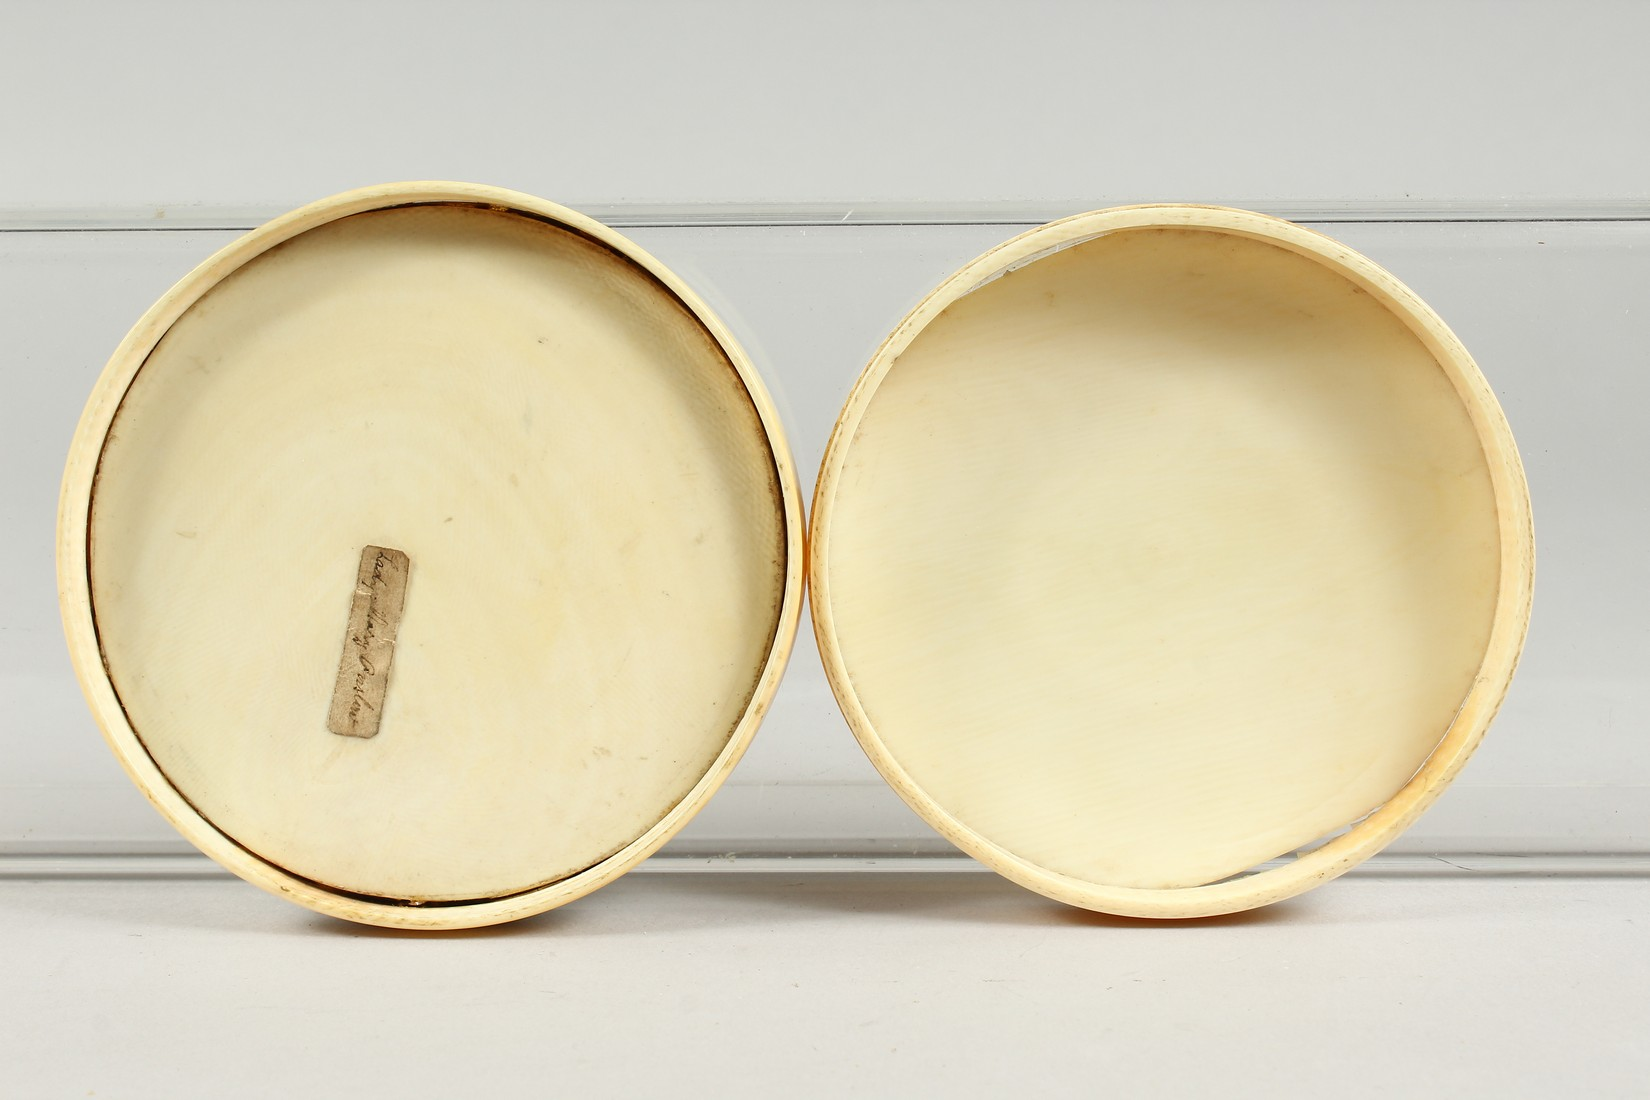 A GEORGIAN IVORY CIRCULAR BOX, the top painted with a portrait of Lady Mary Onslow. 3.75ins - Image 8 of 8